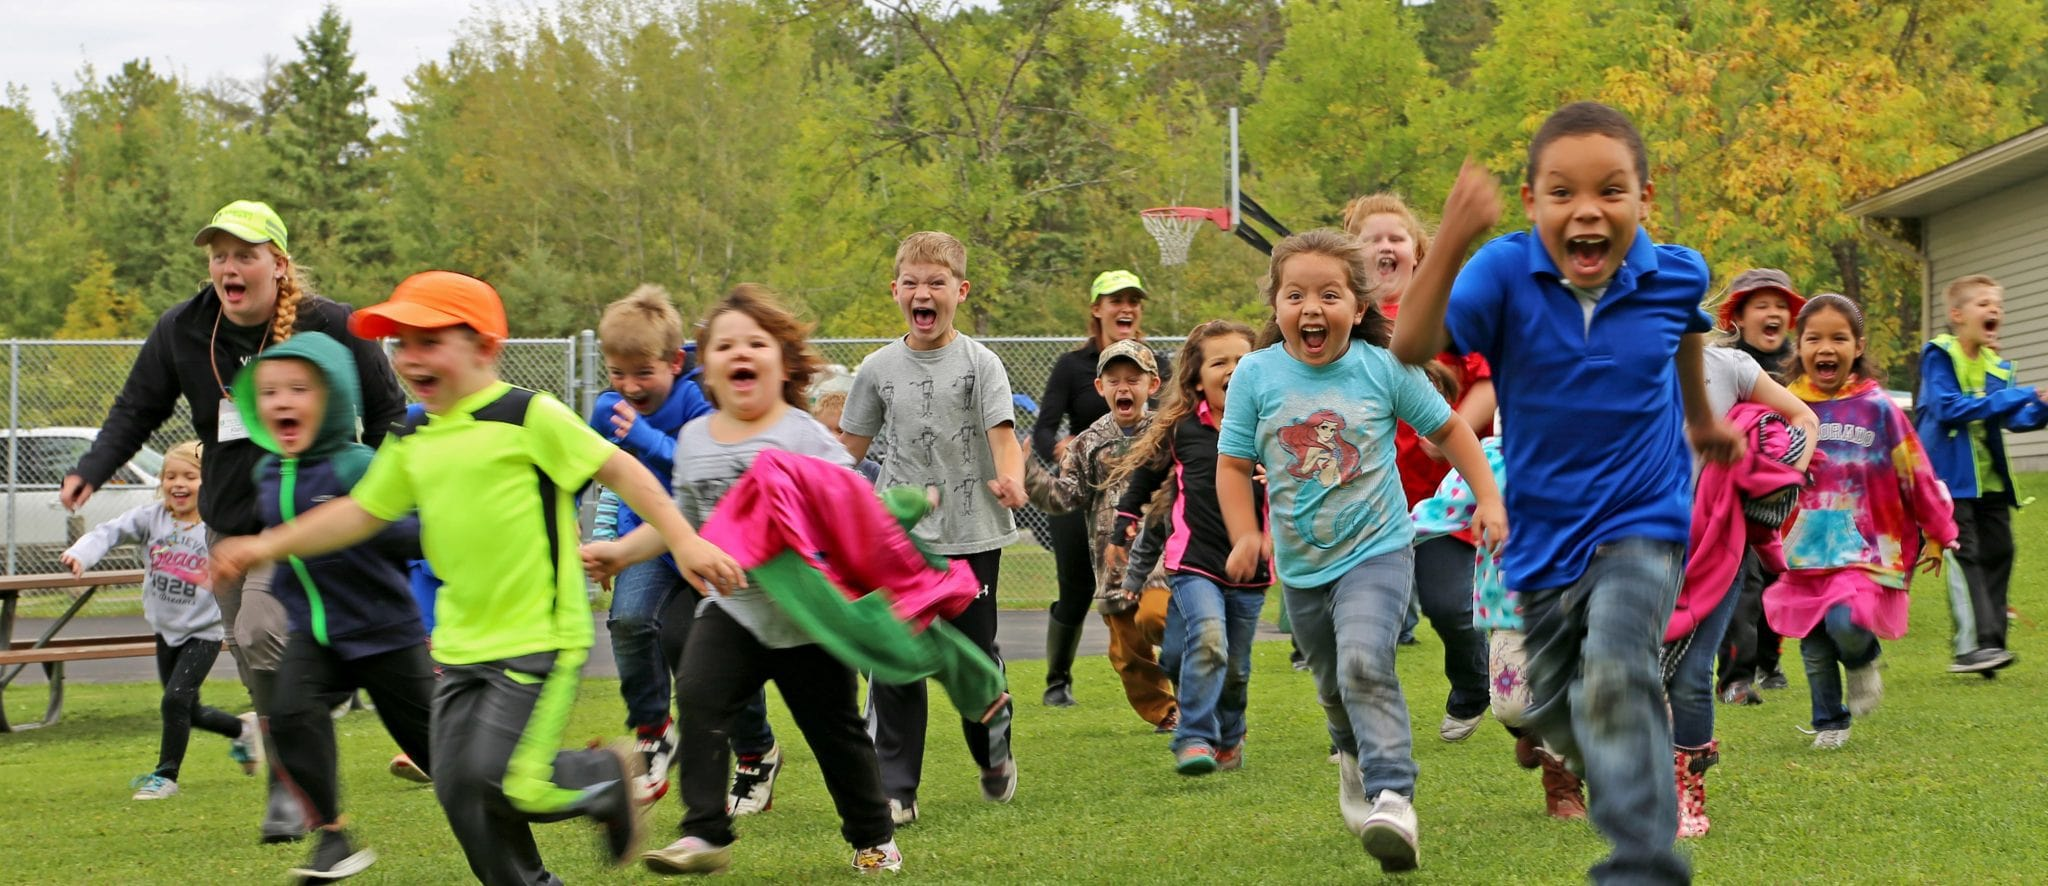 Excited children run toi Canoemobile